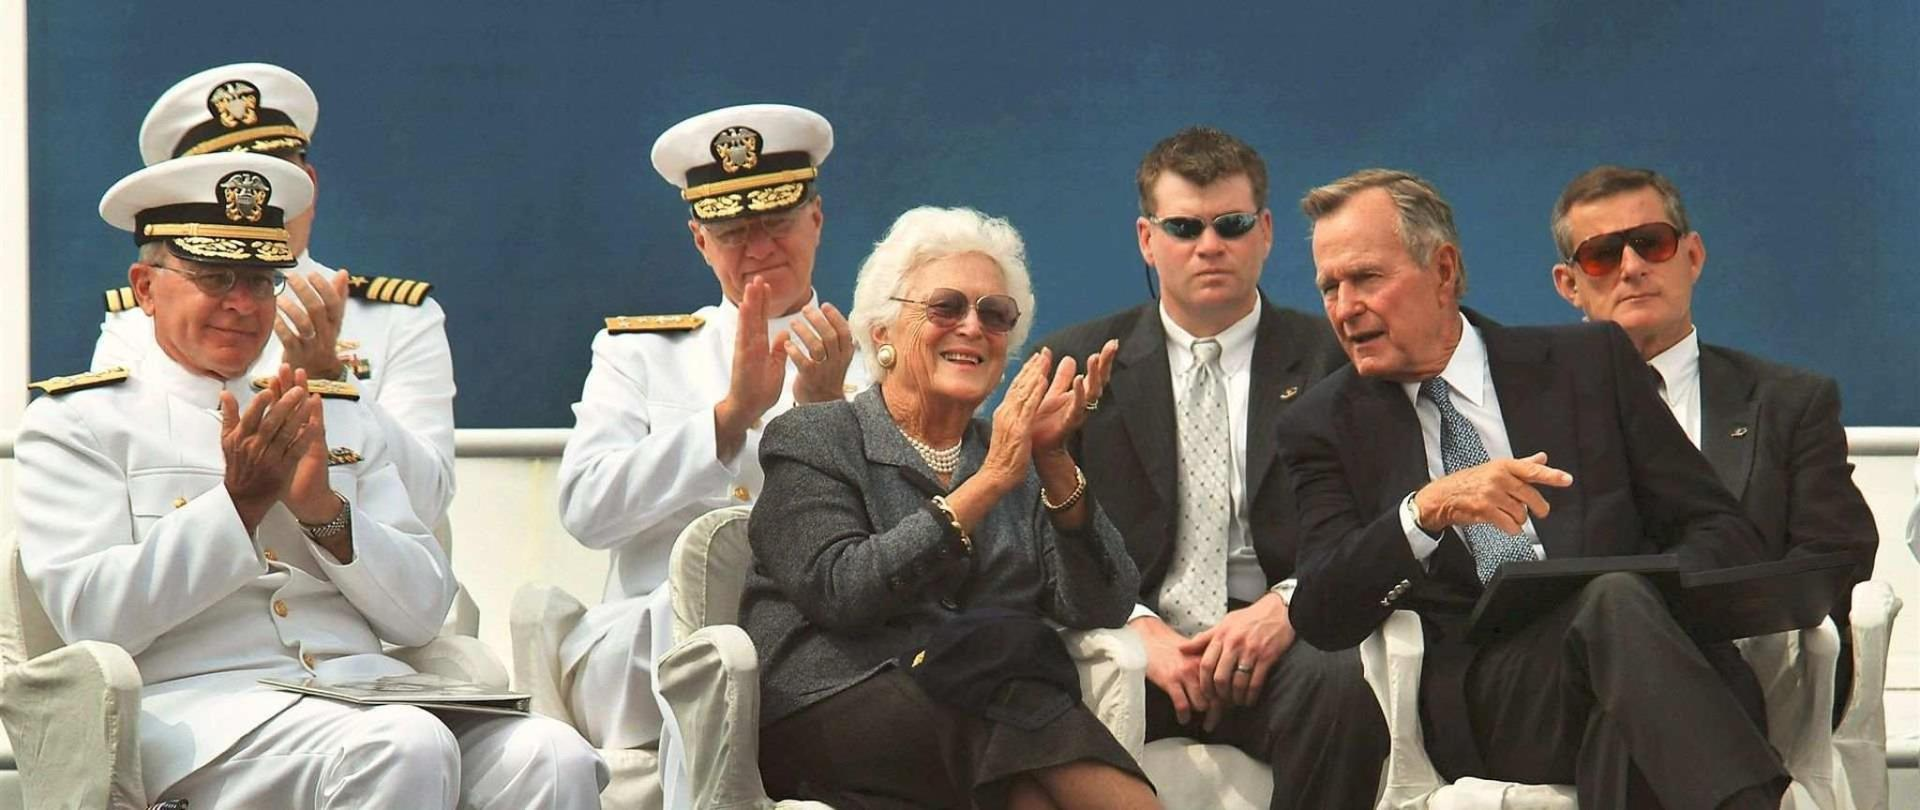 us-navy-030906-n-2383b-018-president-george-h-w-bush-and-former-first-lady-barbara-bush-seated-with-adm-vern-clark-during-the-keel-laying-ceremony-for-george-h-w-buch-cvn-771.jpg.1920x810_0_48_10000.jpeg.1920x0.jpeg